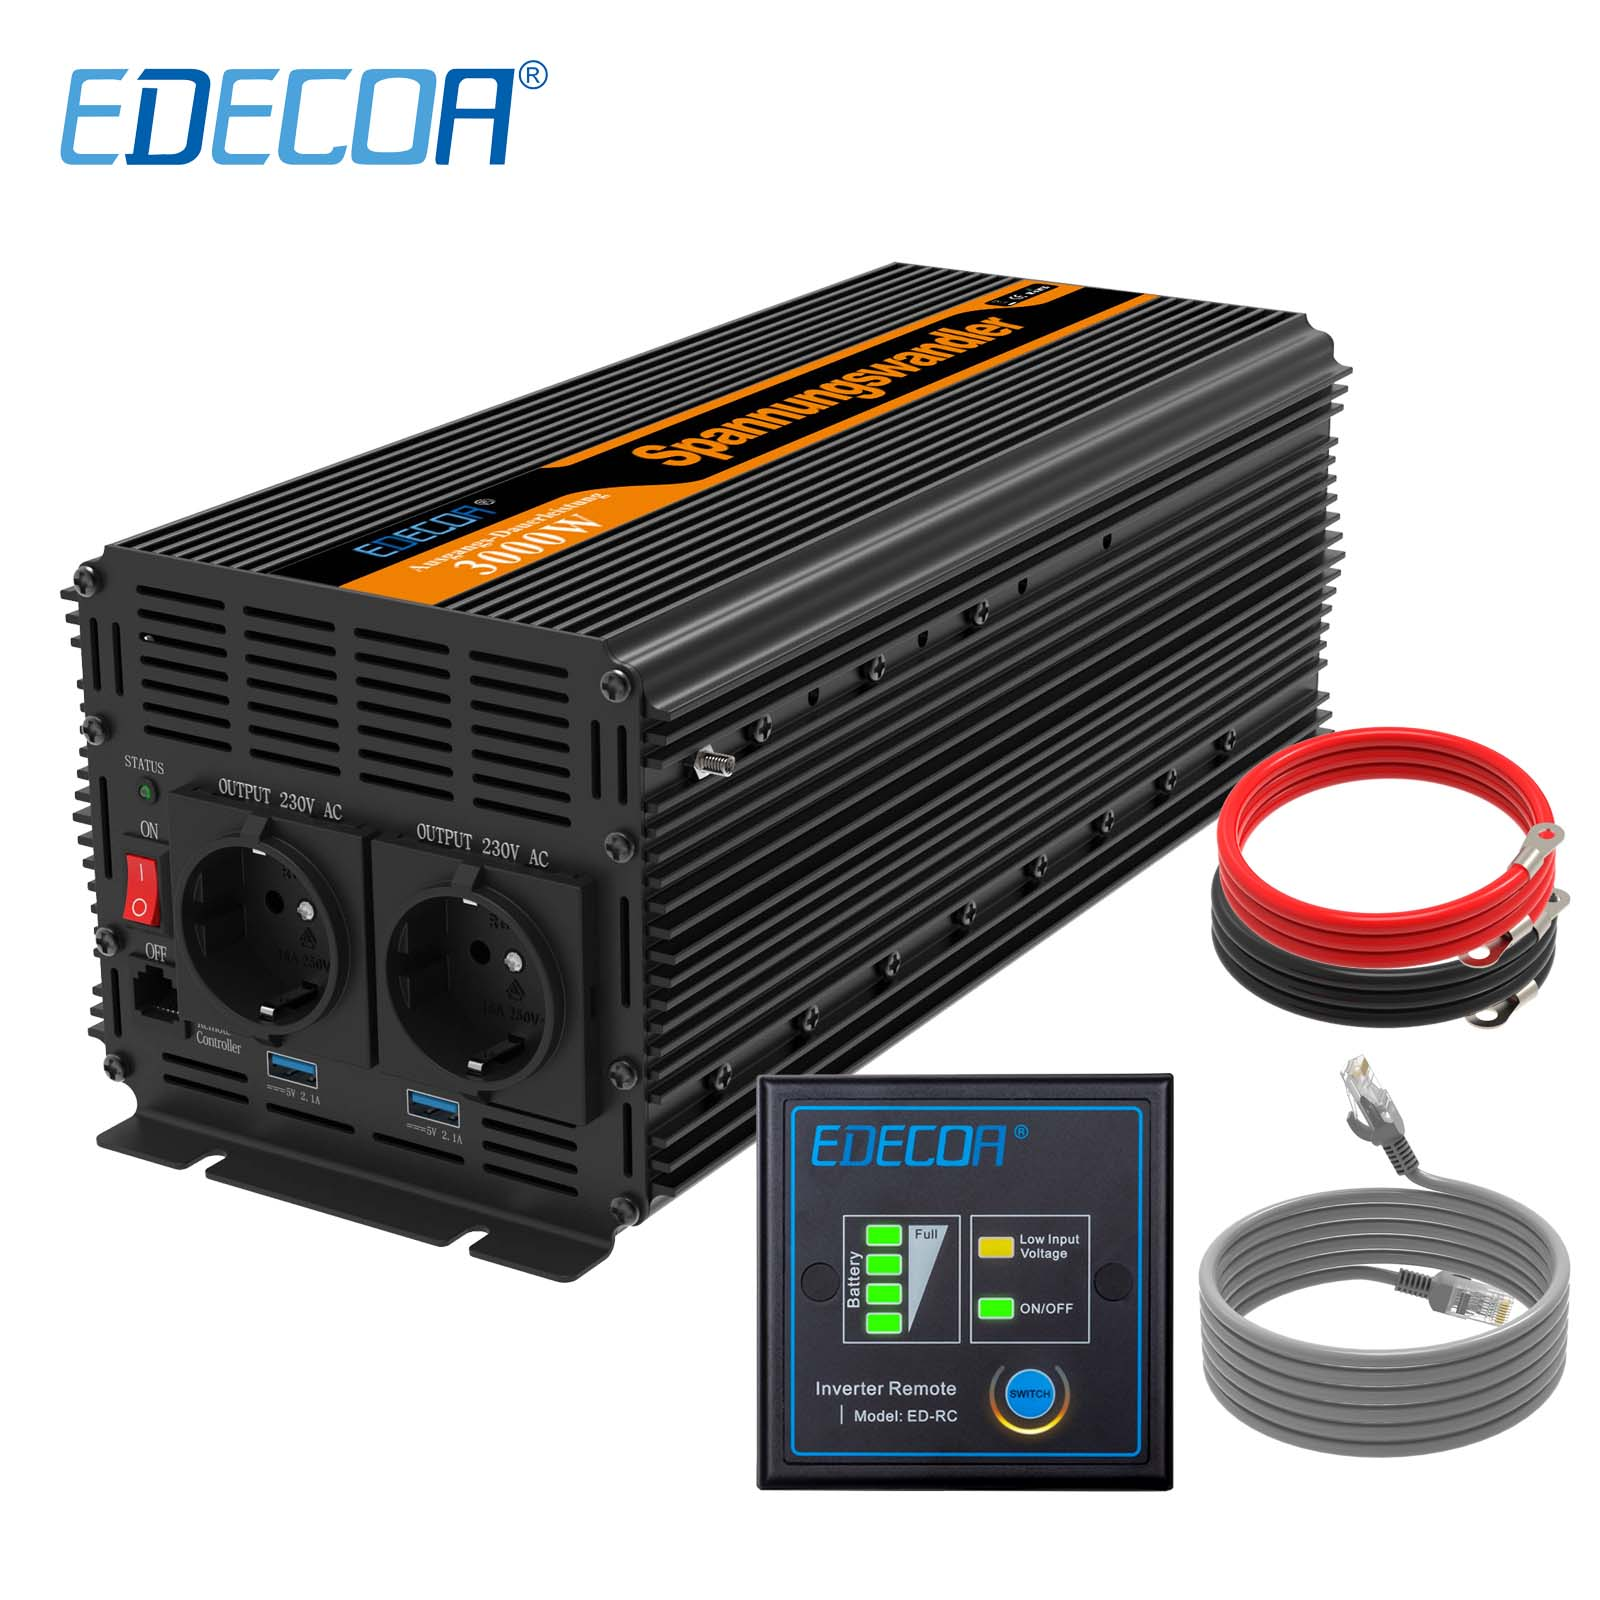 EDECOA modified sine wave <font><b>inverter</b></font> DC <font><b>24v</b></font> AC 220v 3000W <font><b>6000W</b></font> power <font><b>inverter</b></font> off grid with remote control USB ports 5V 2.1A image